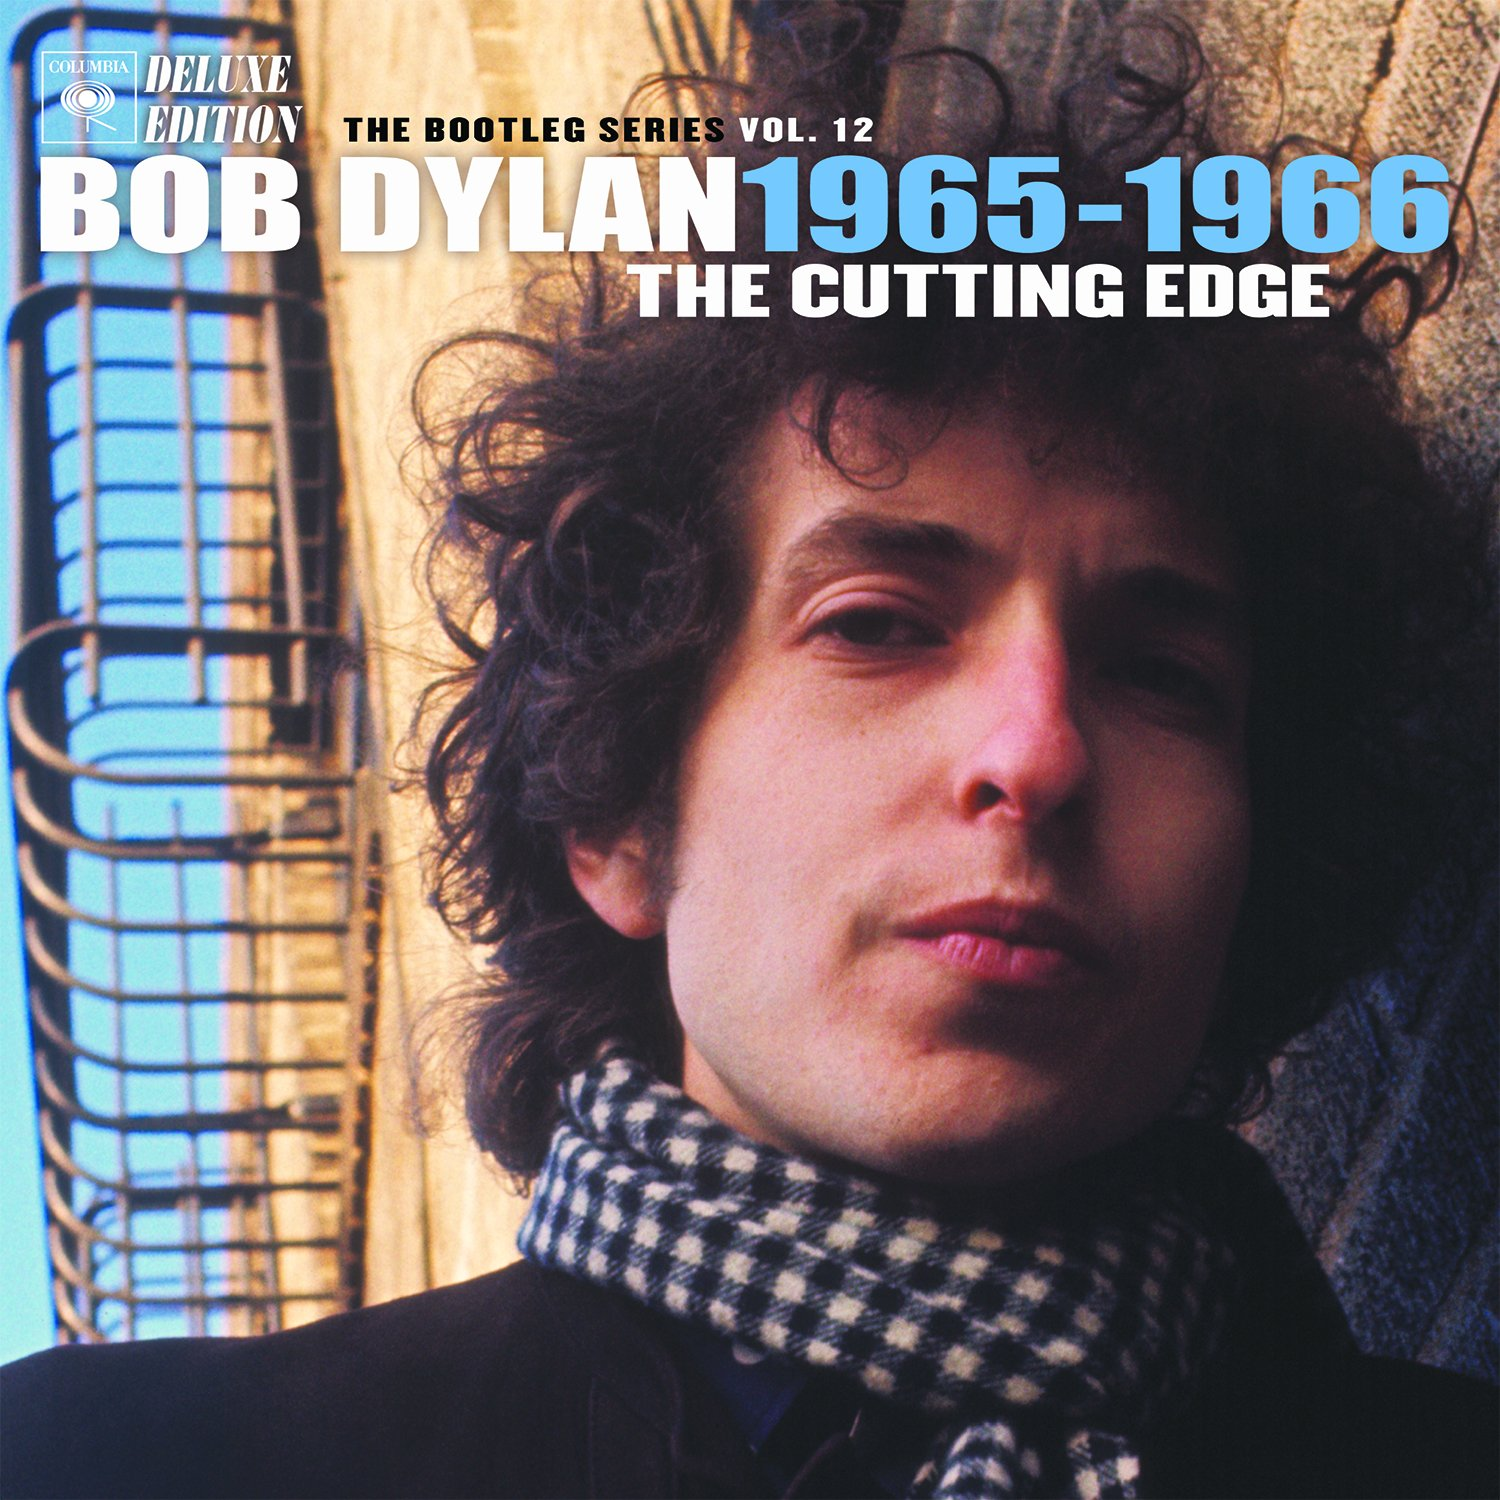 The Cutting Edge 1965 Box set, CD, Import